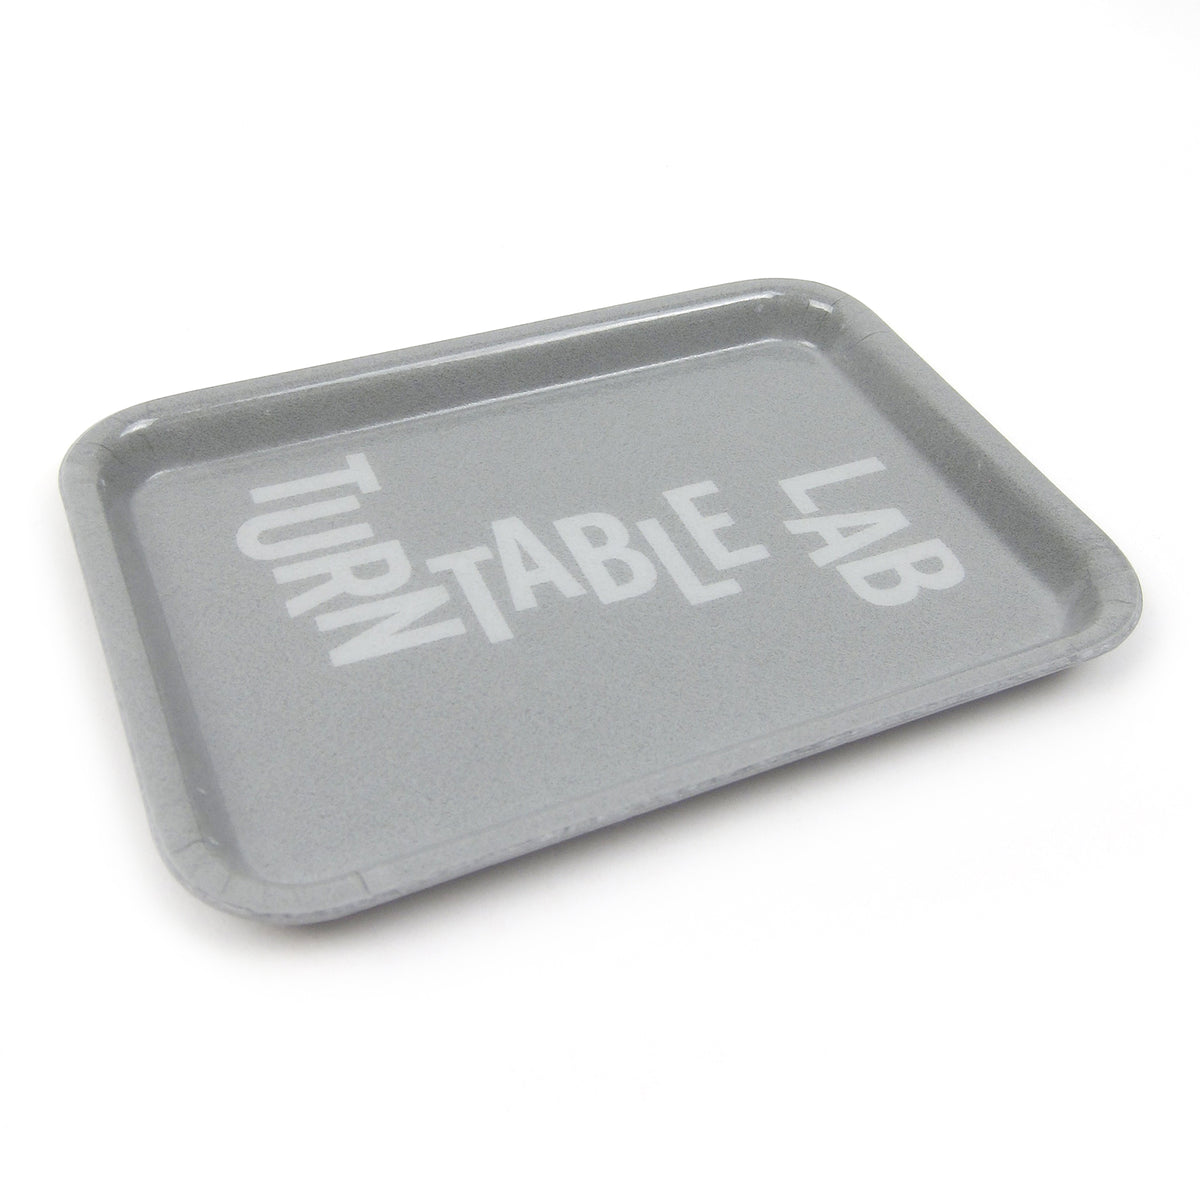 Turntable Lab: Accessories Spliff Tray - Grey angle